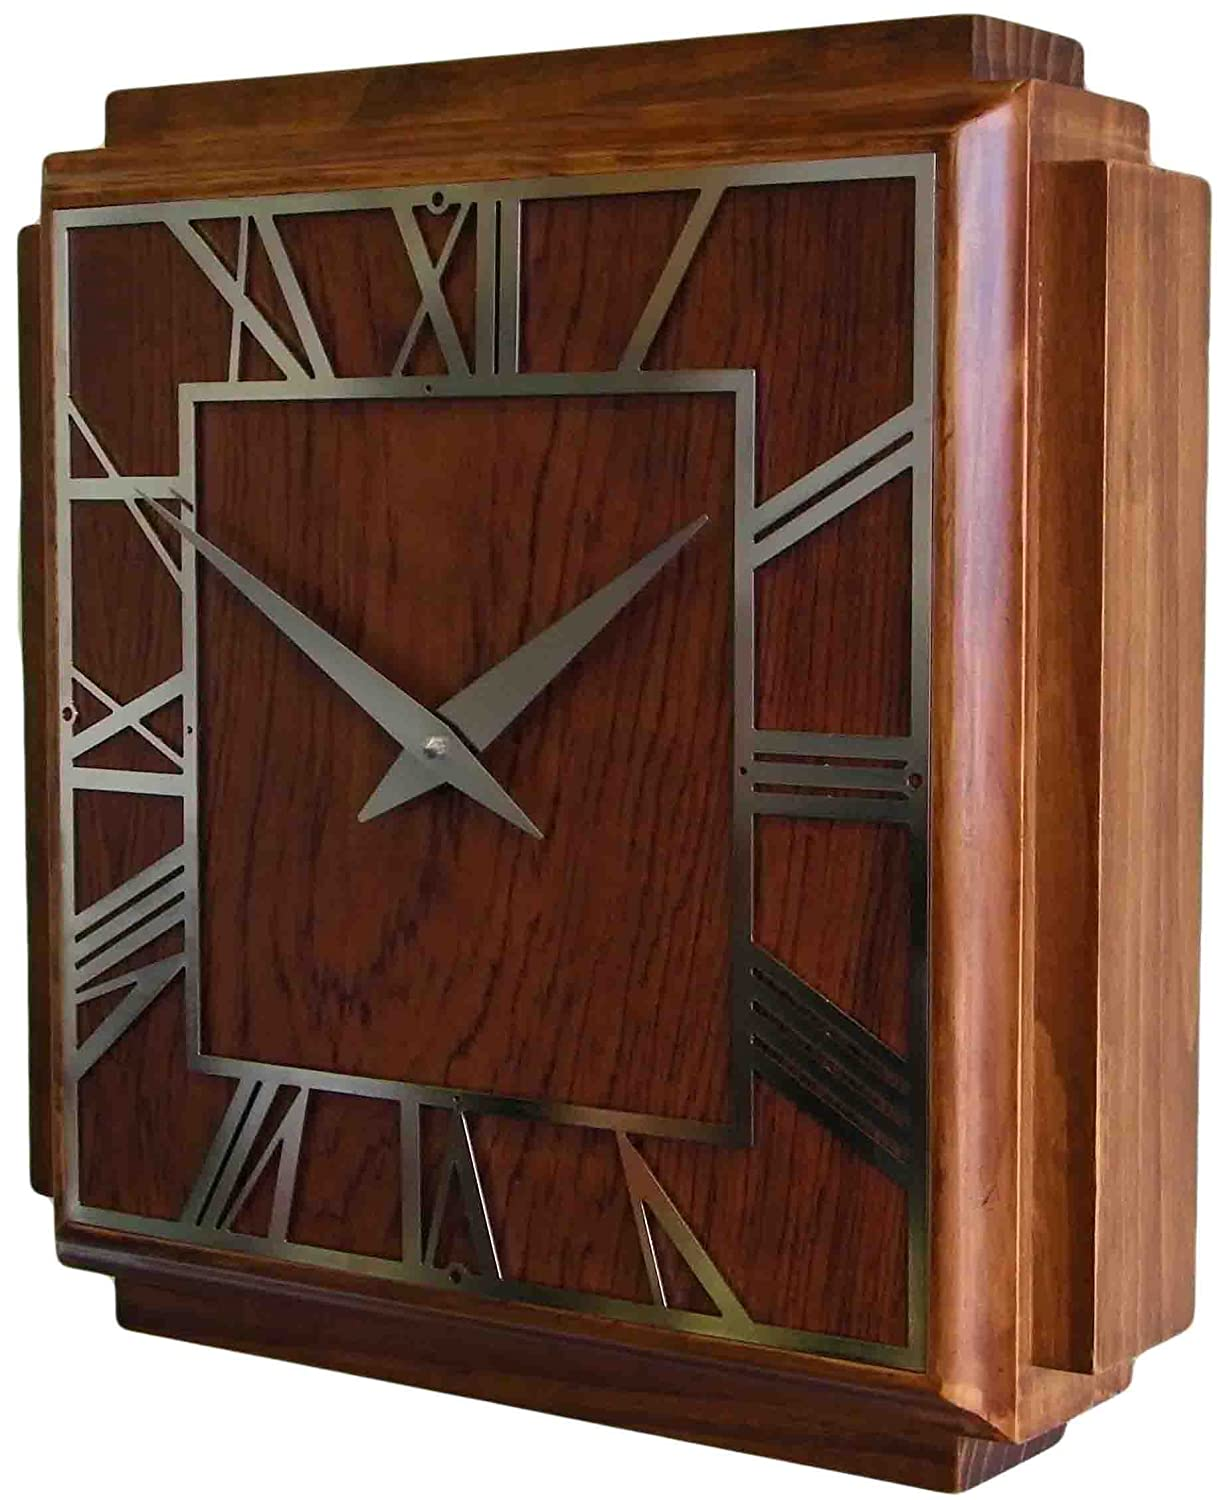 Roger lascelles wooden deco wall clock amazon kitchen home amipublicfo Gallery